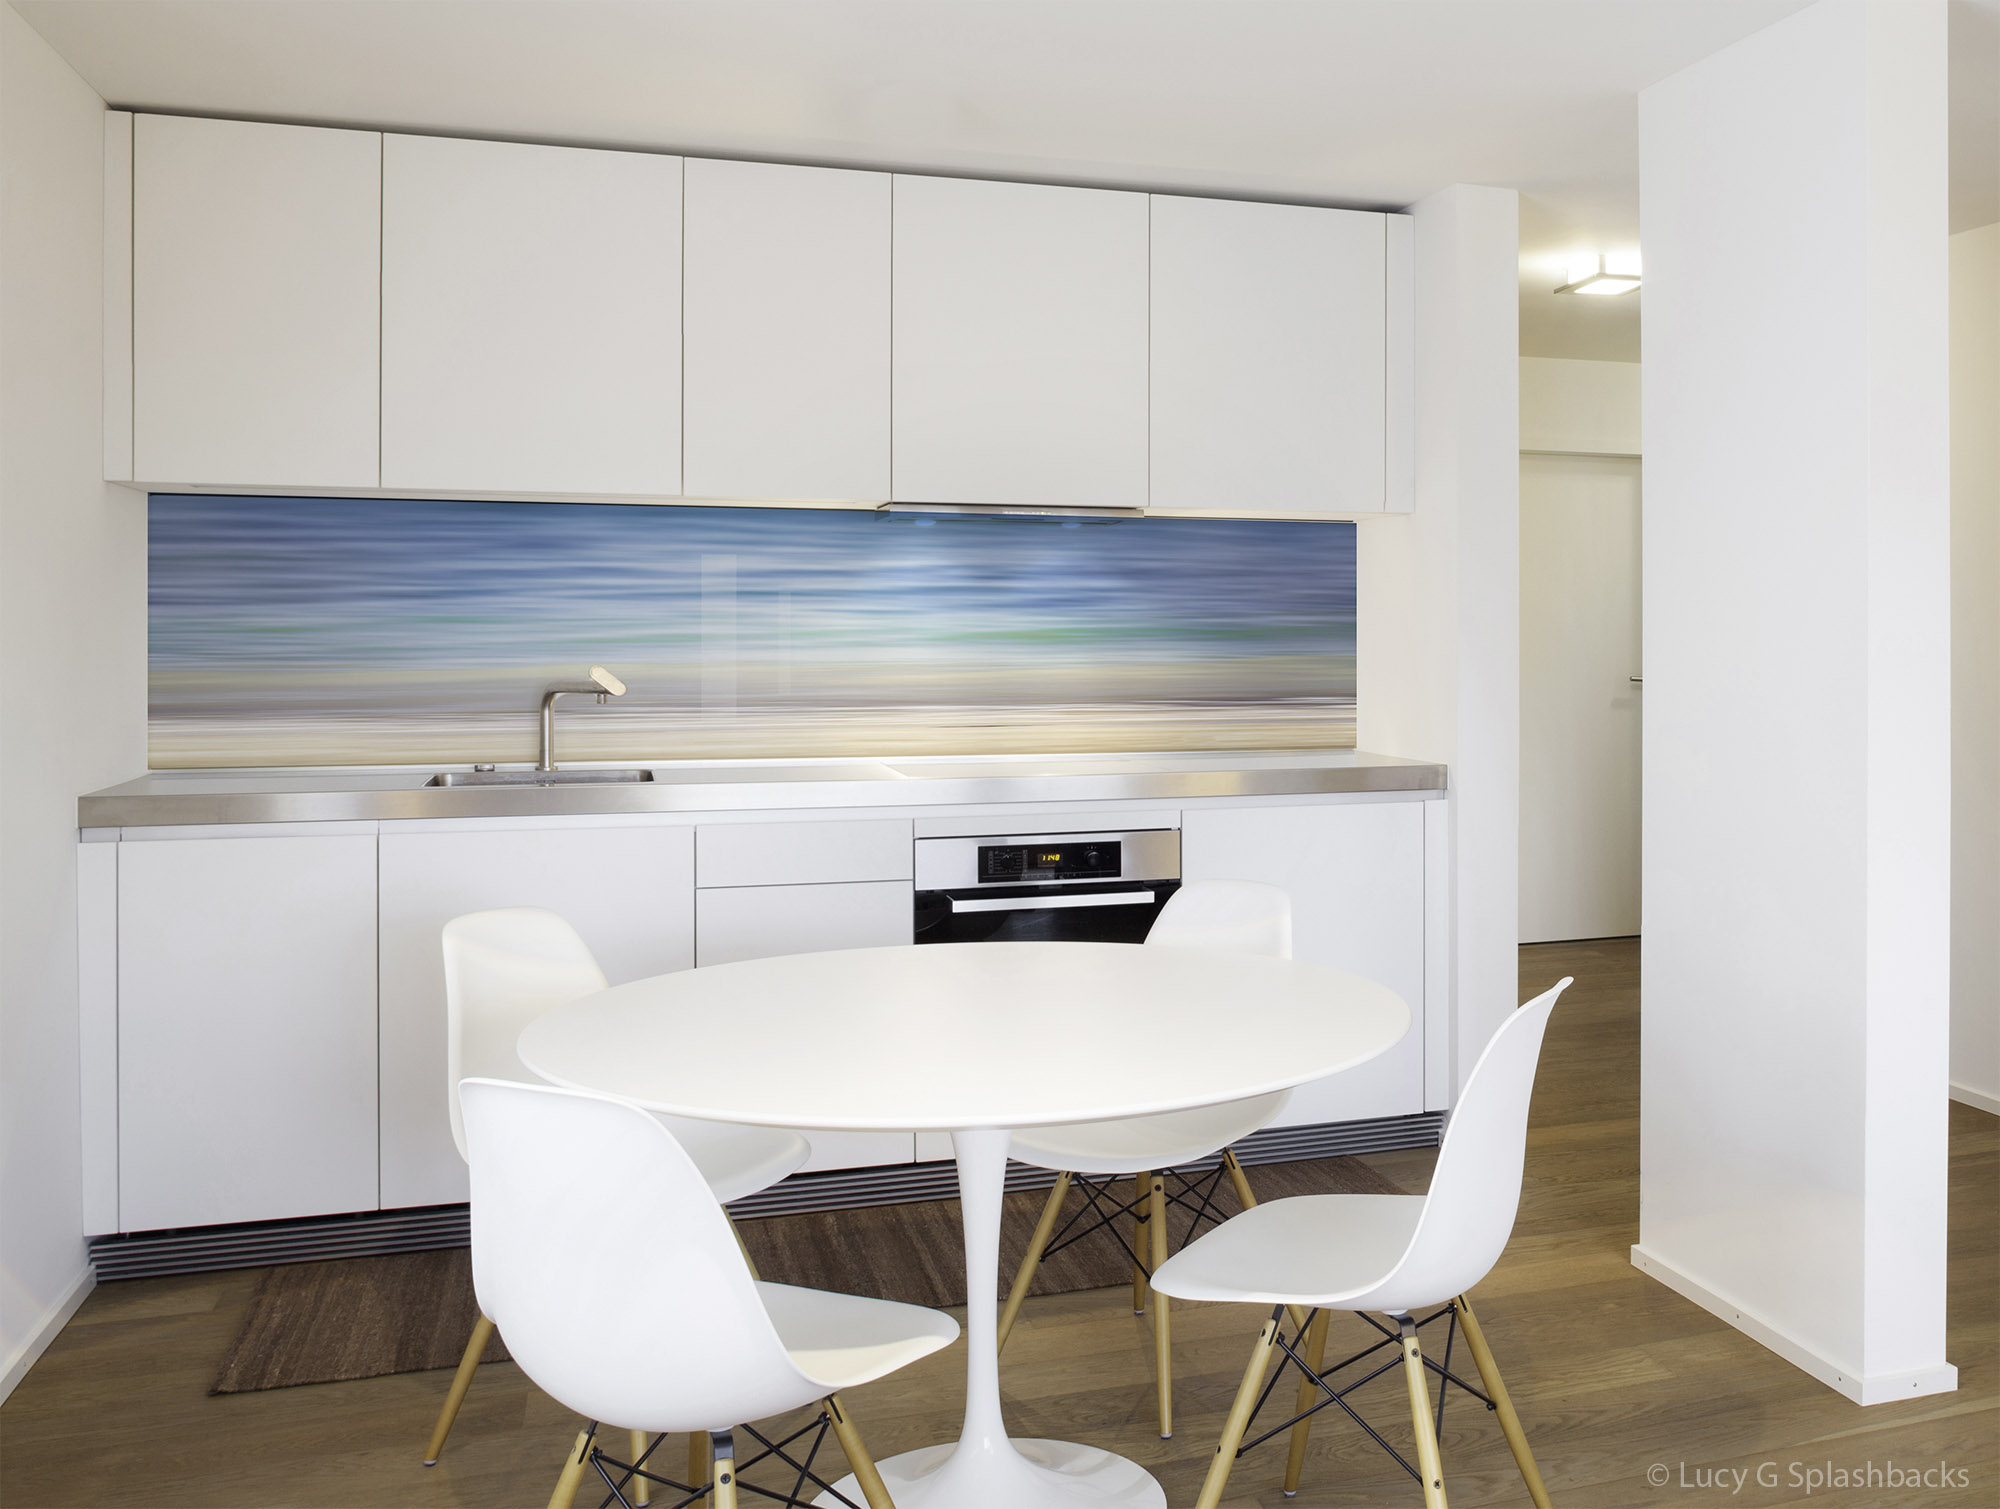 printed image on glass splashback lucy g tropical waters A.jpg